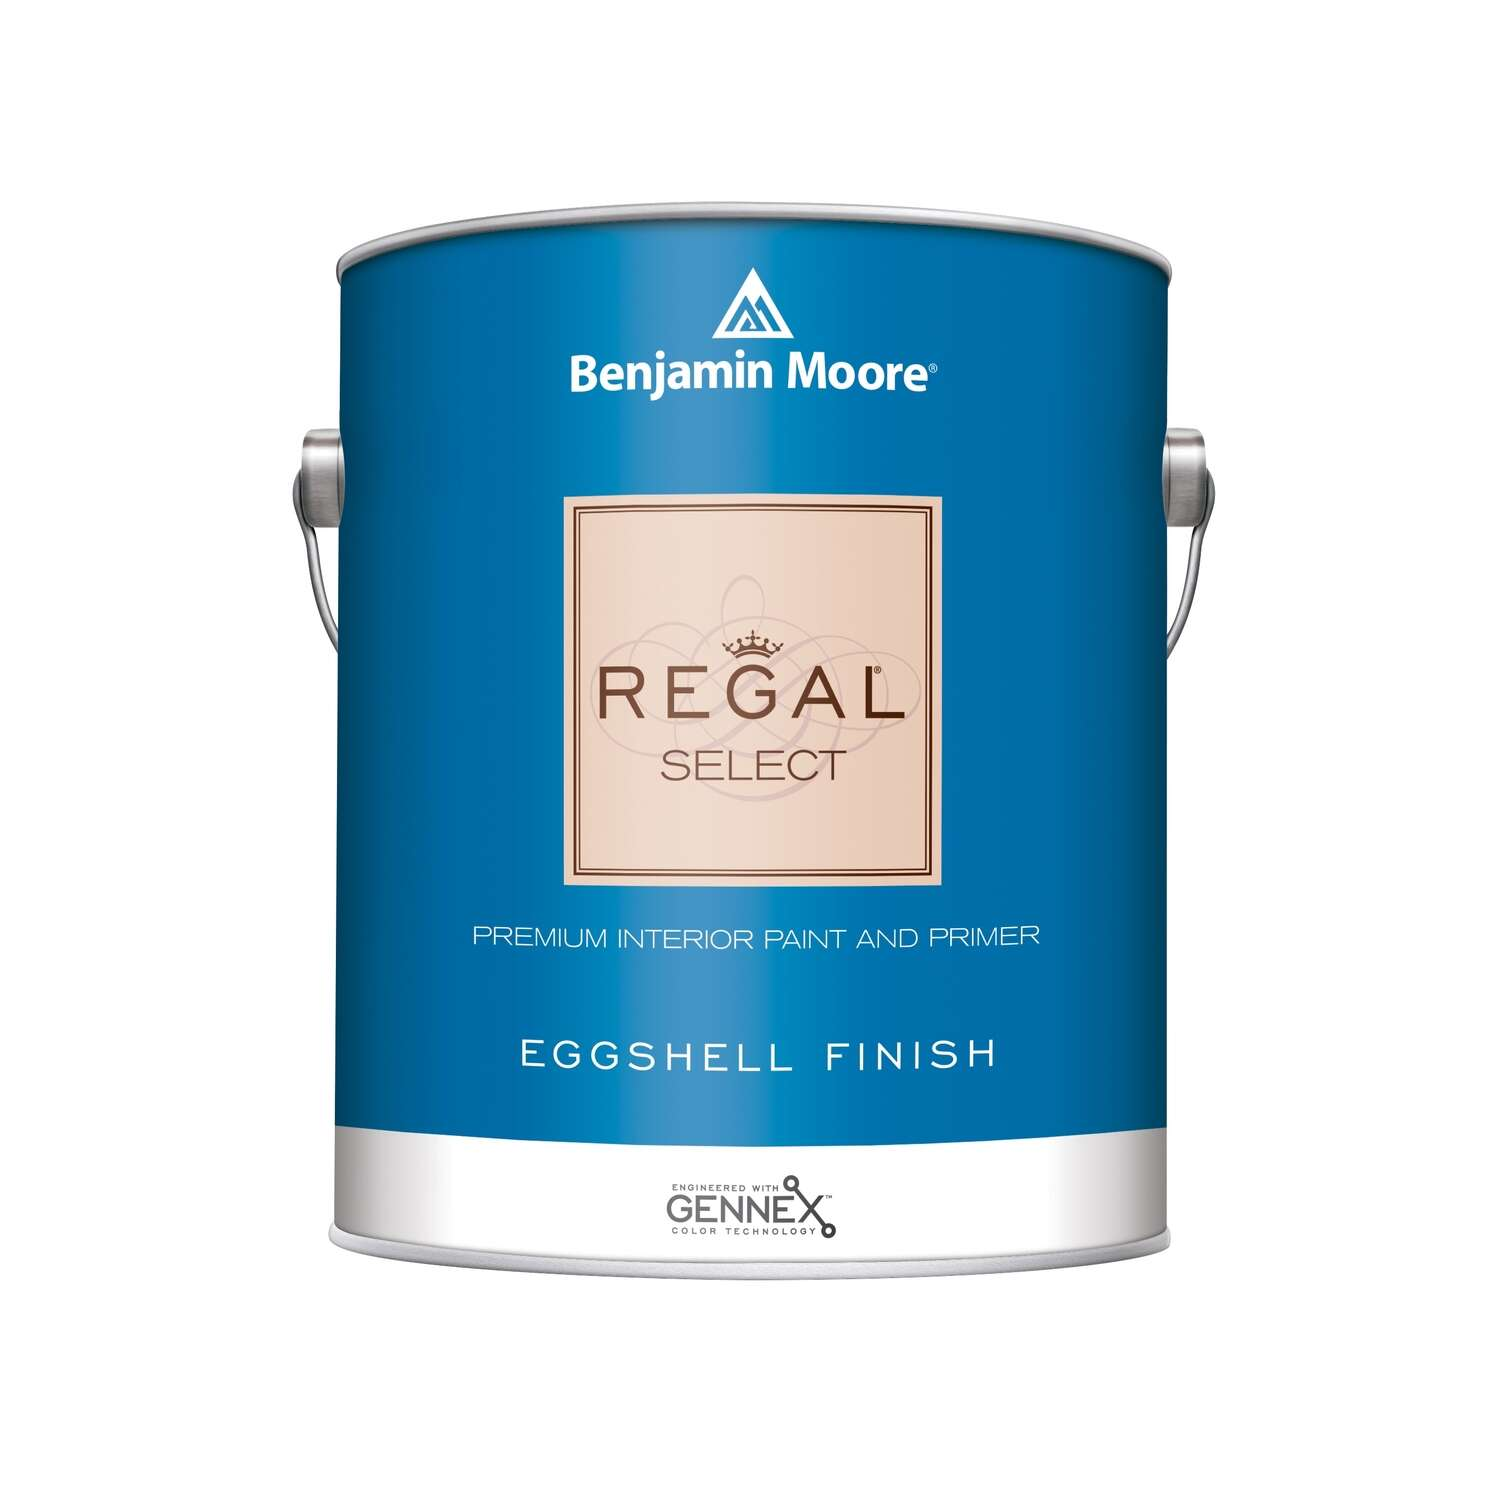 Benjamin Moore  Regal  Eggshell  Base 2  Acrylic  Paint  Indoor  1 gal.